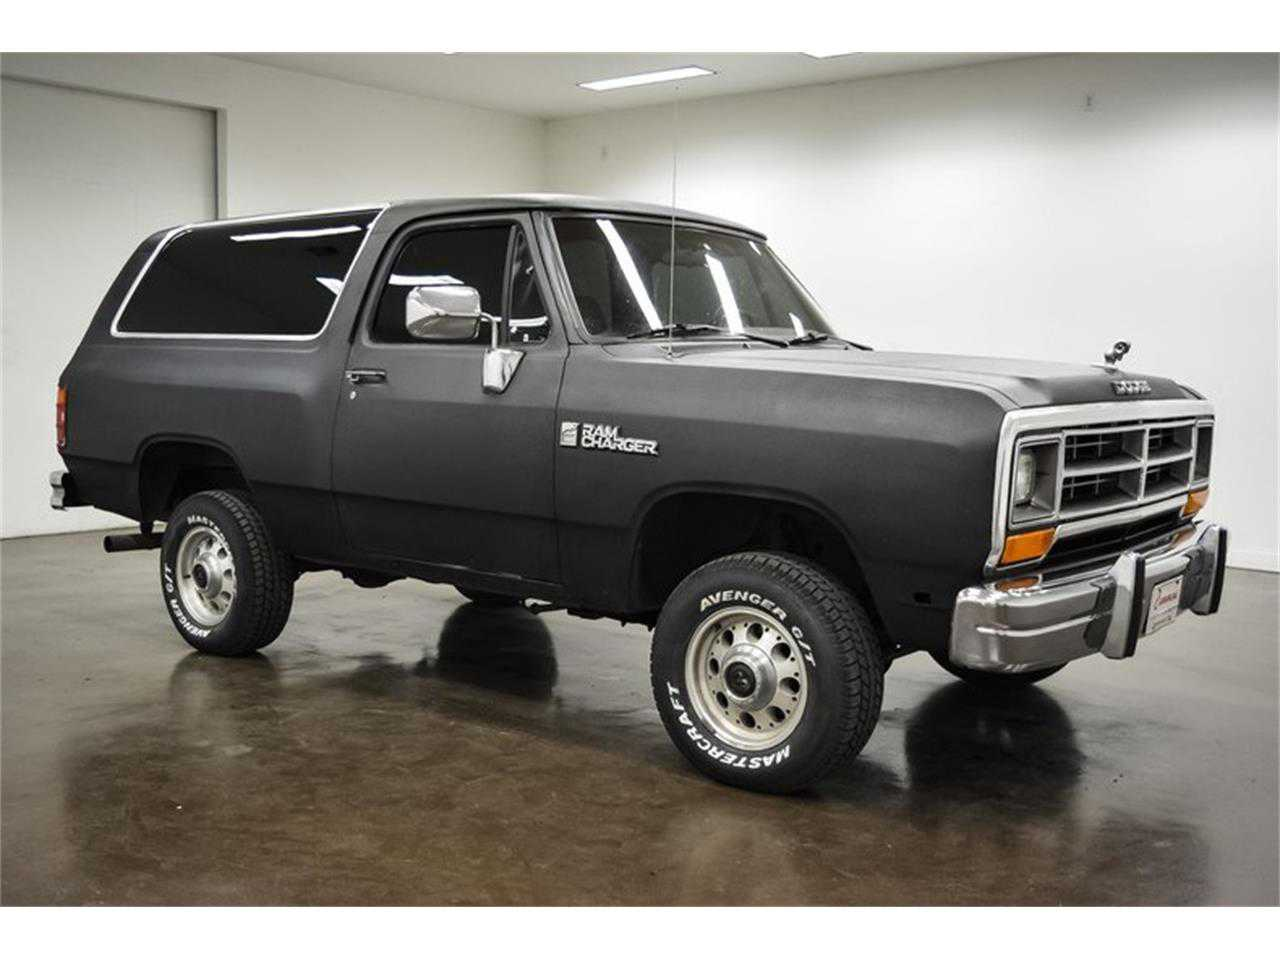 1990 Dodge Ramcharger For Sale In 3b4gm07z2lm009787